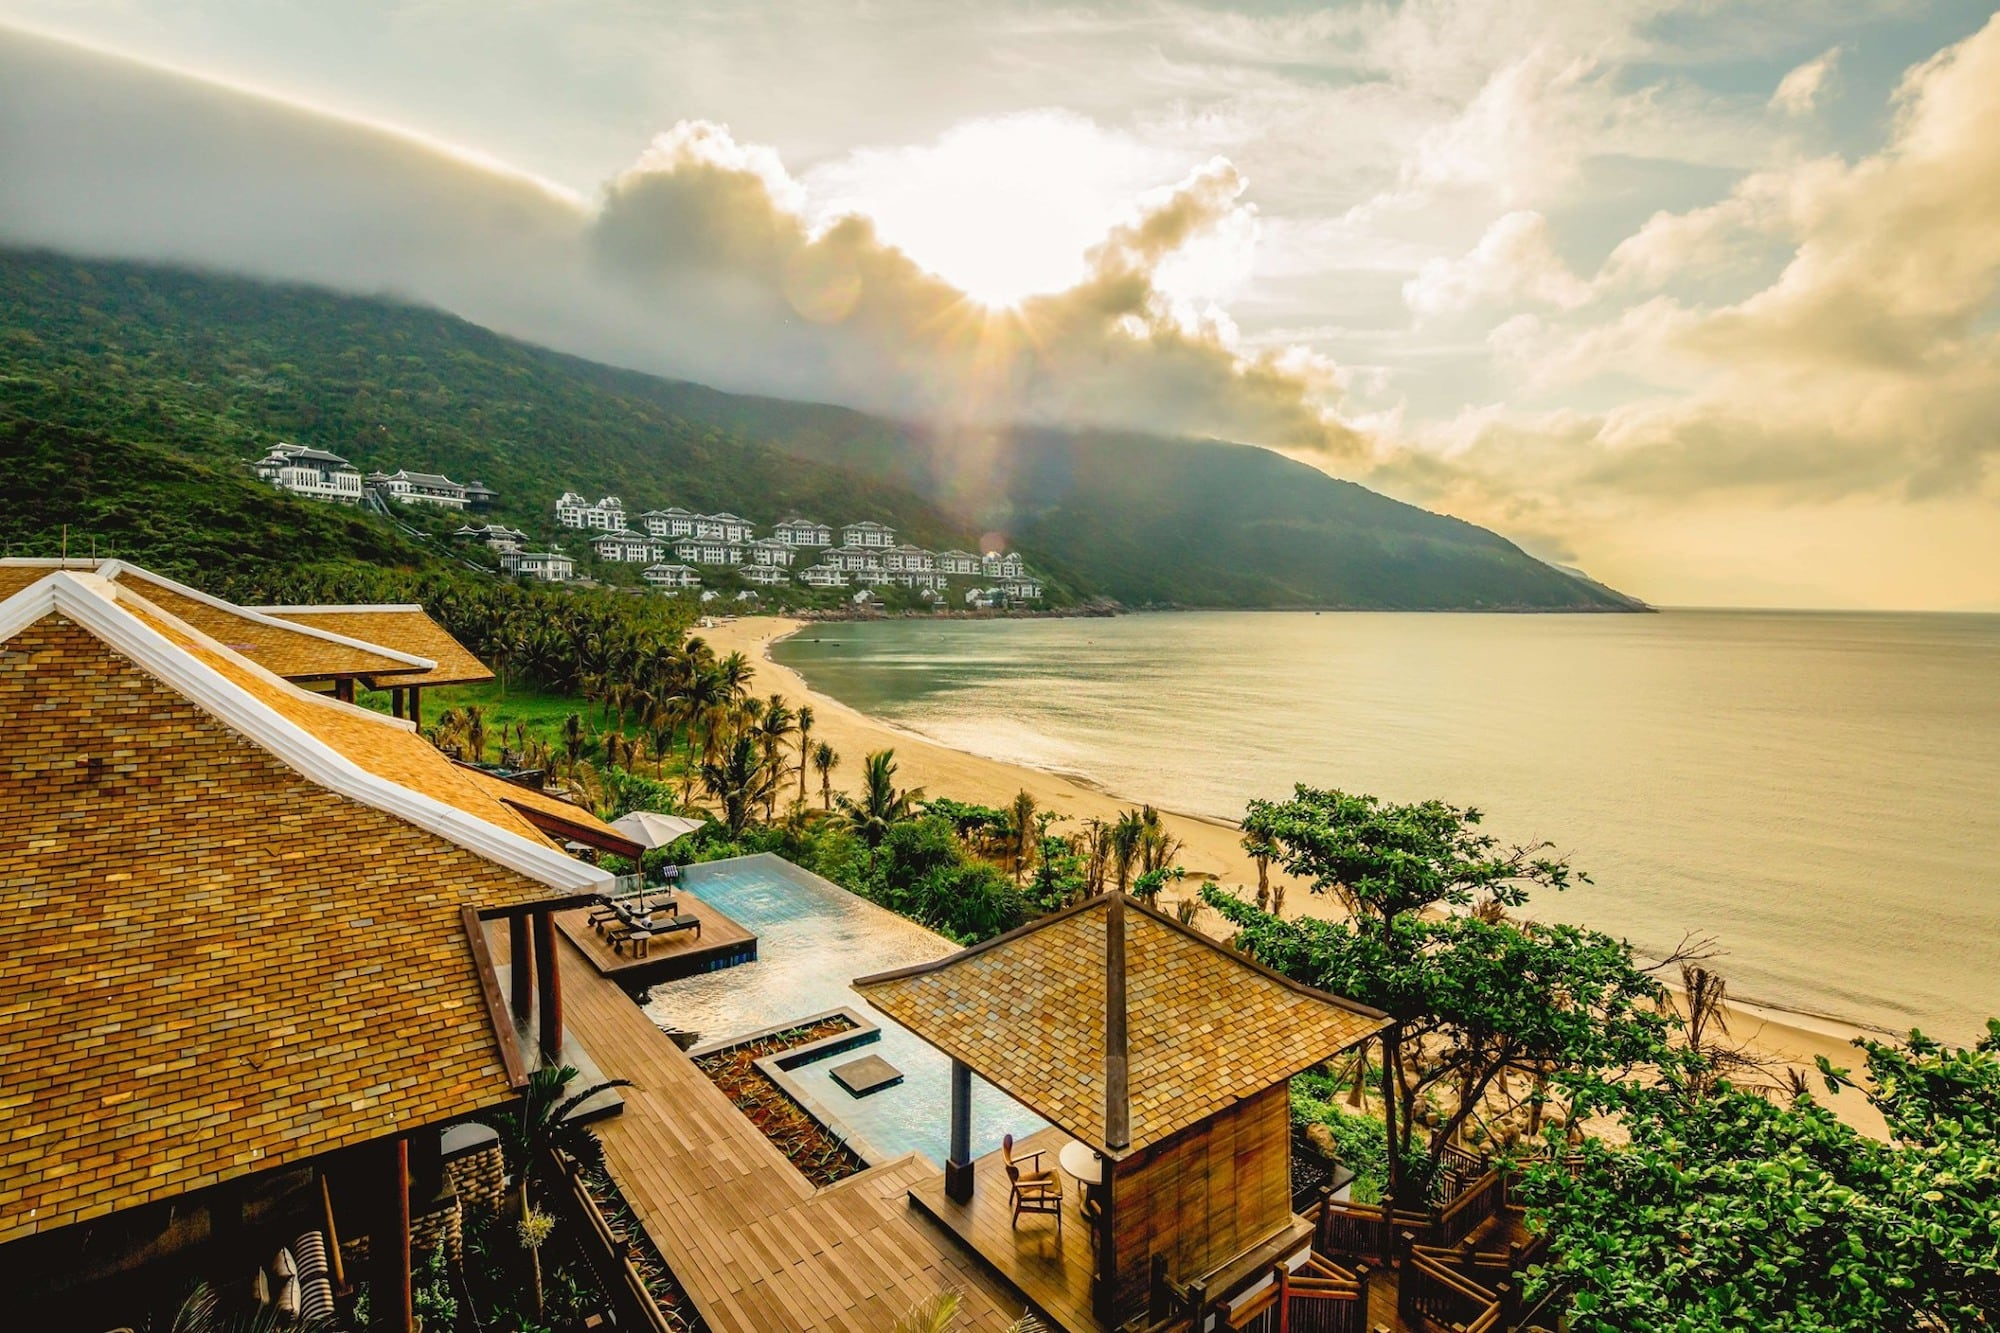 InterContinental Danang Sun Peninsula Resort Provides Fertile Ground For Eco-Tourism And Wildlife To Flourish